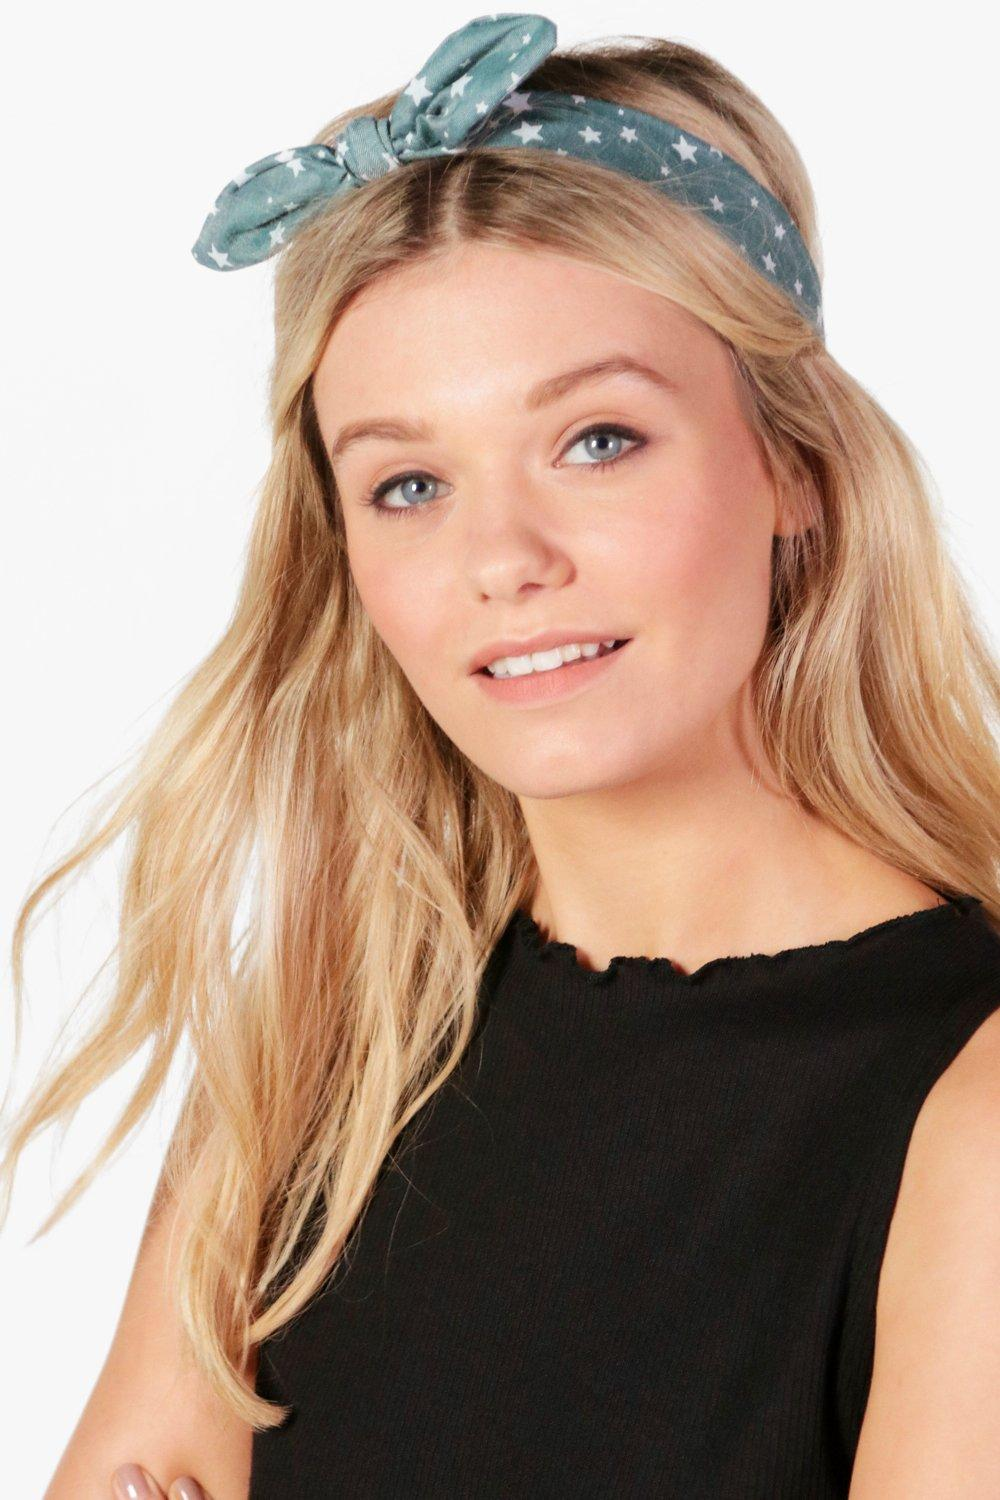 Star Print Bow Tie Headband - green - Ellie Star P